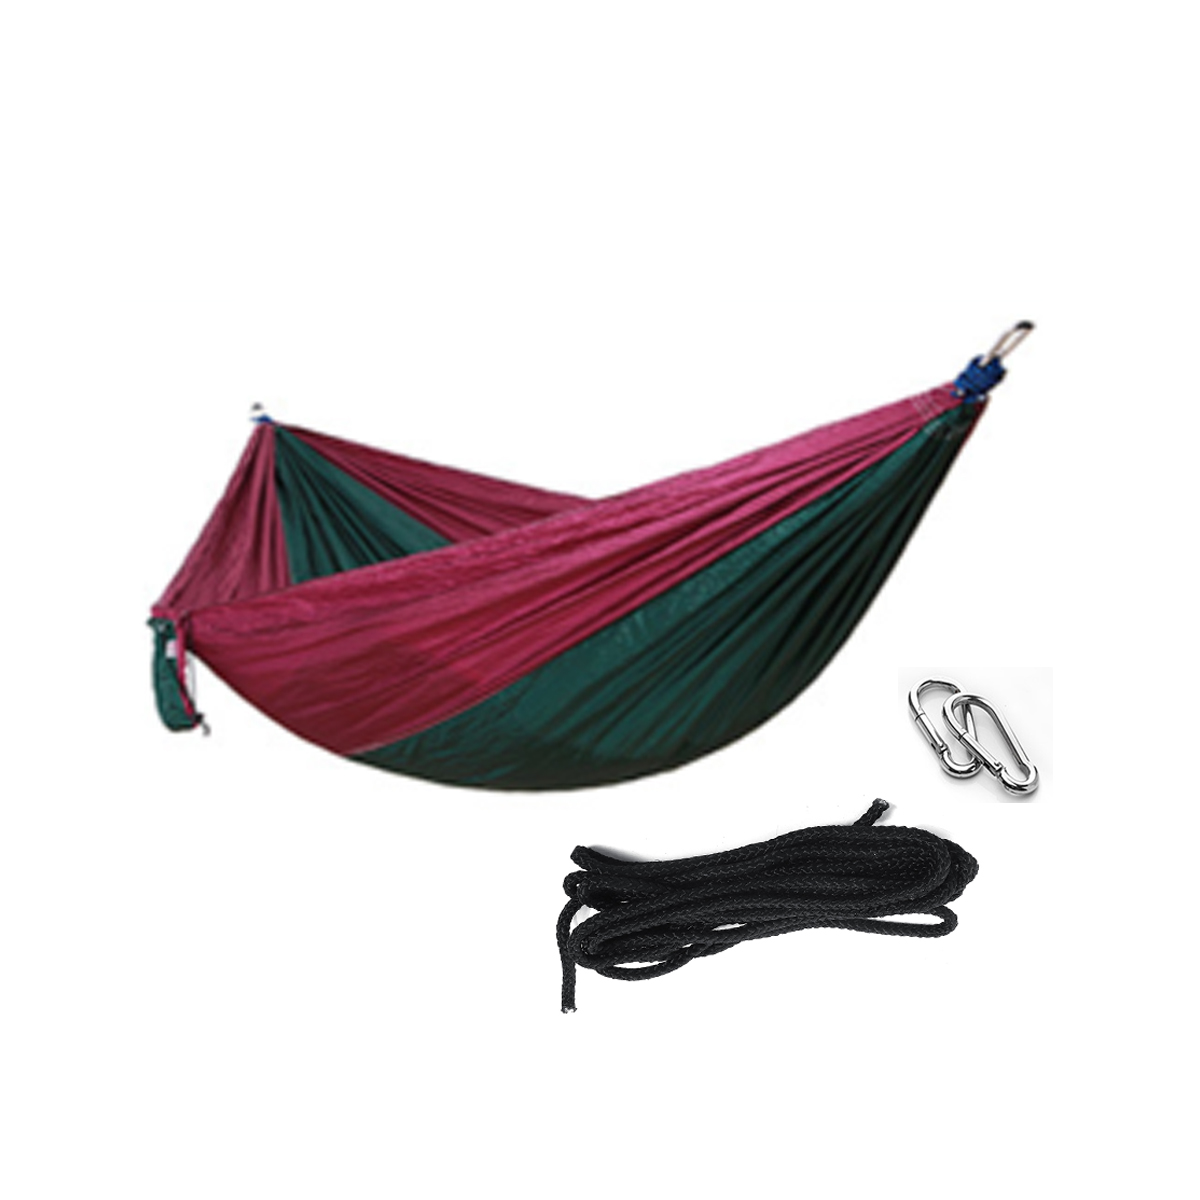 Outdoor Travel Double Person Hanging Hammock Max Load 200KG Portable Camping Hammock Bed